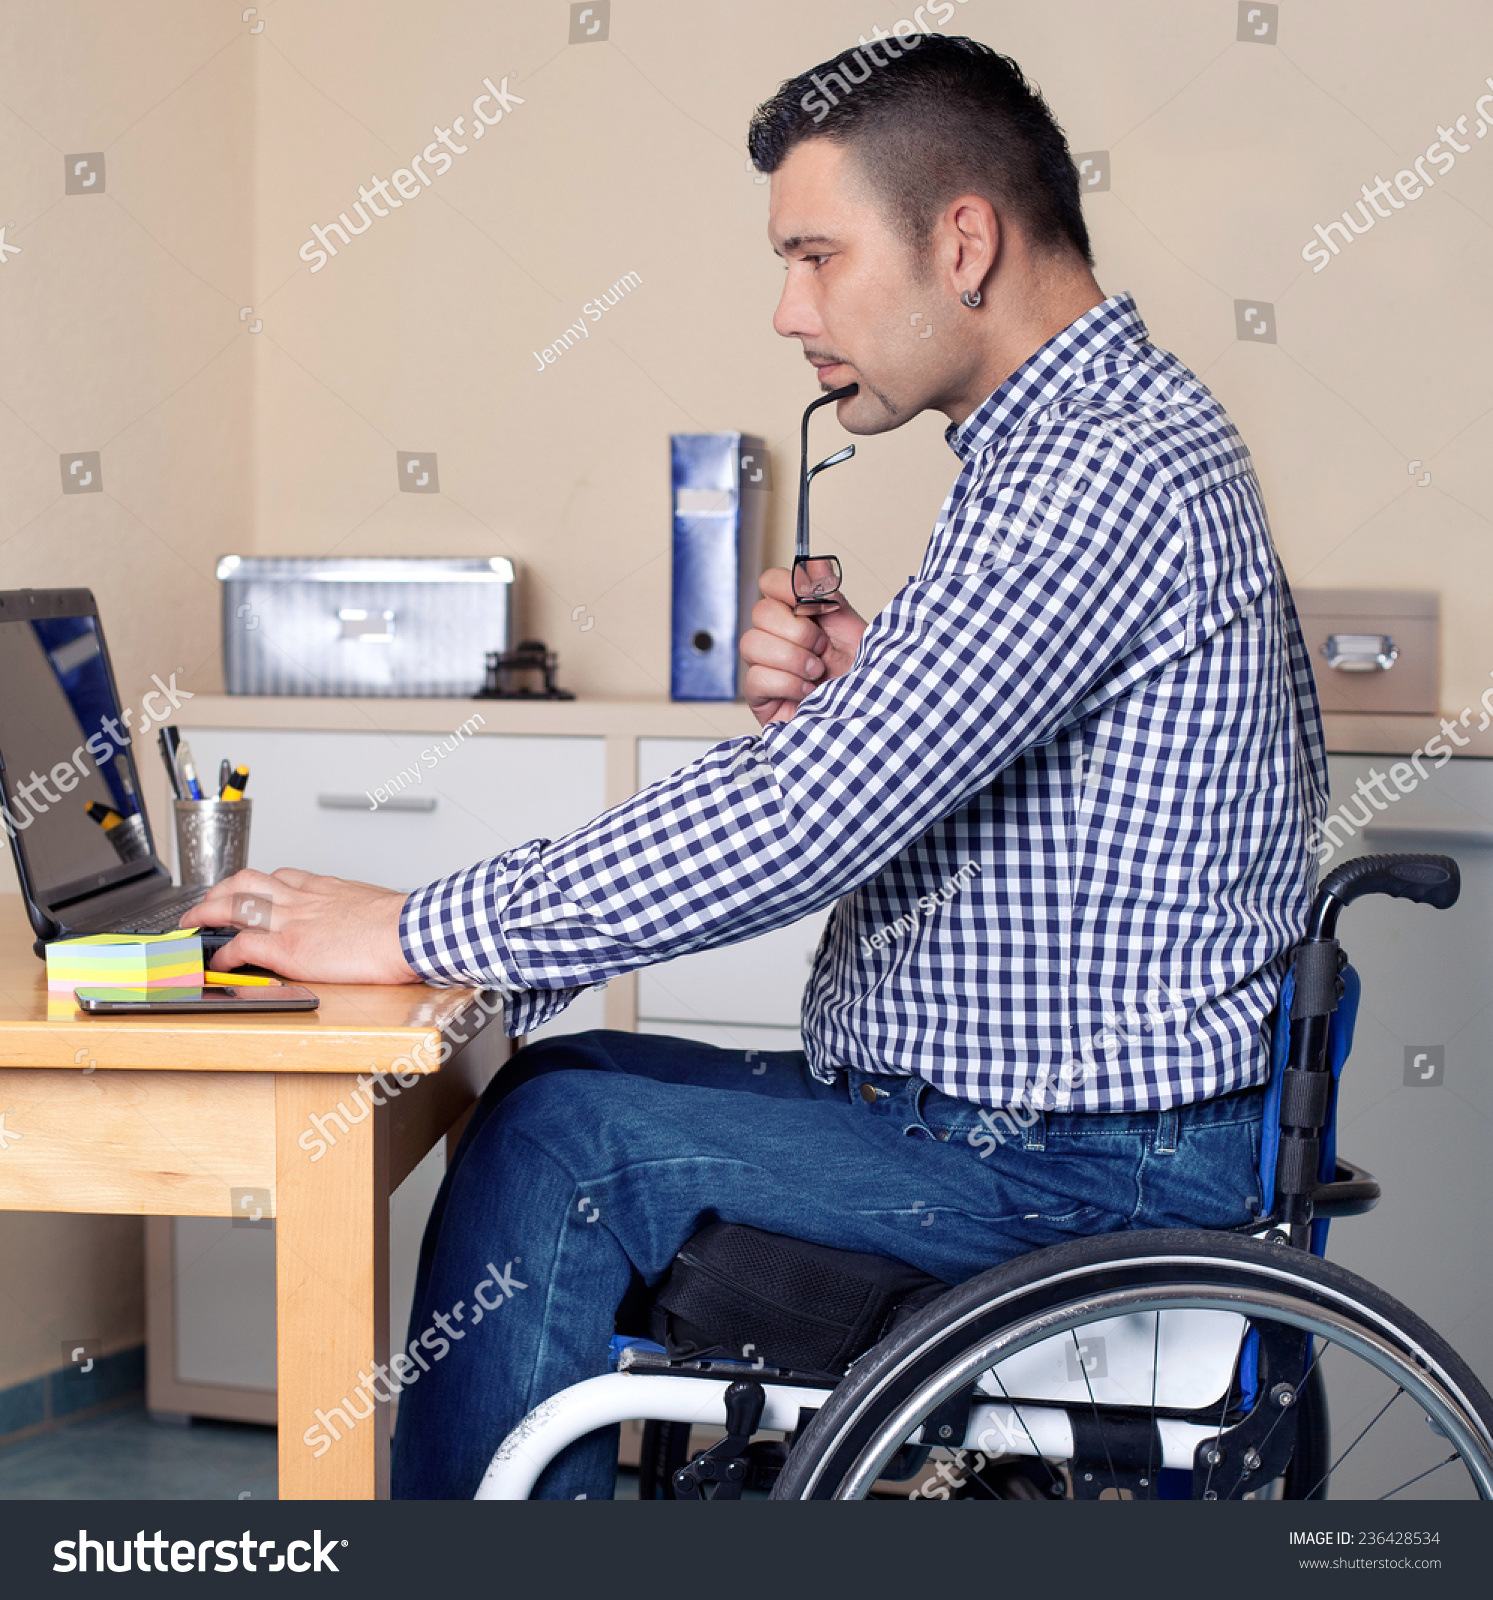 Man In Wheel Chair - Young man in wheelchair in office is using his laptop disabled young man is surfing